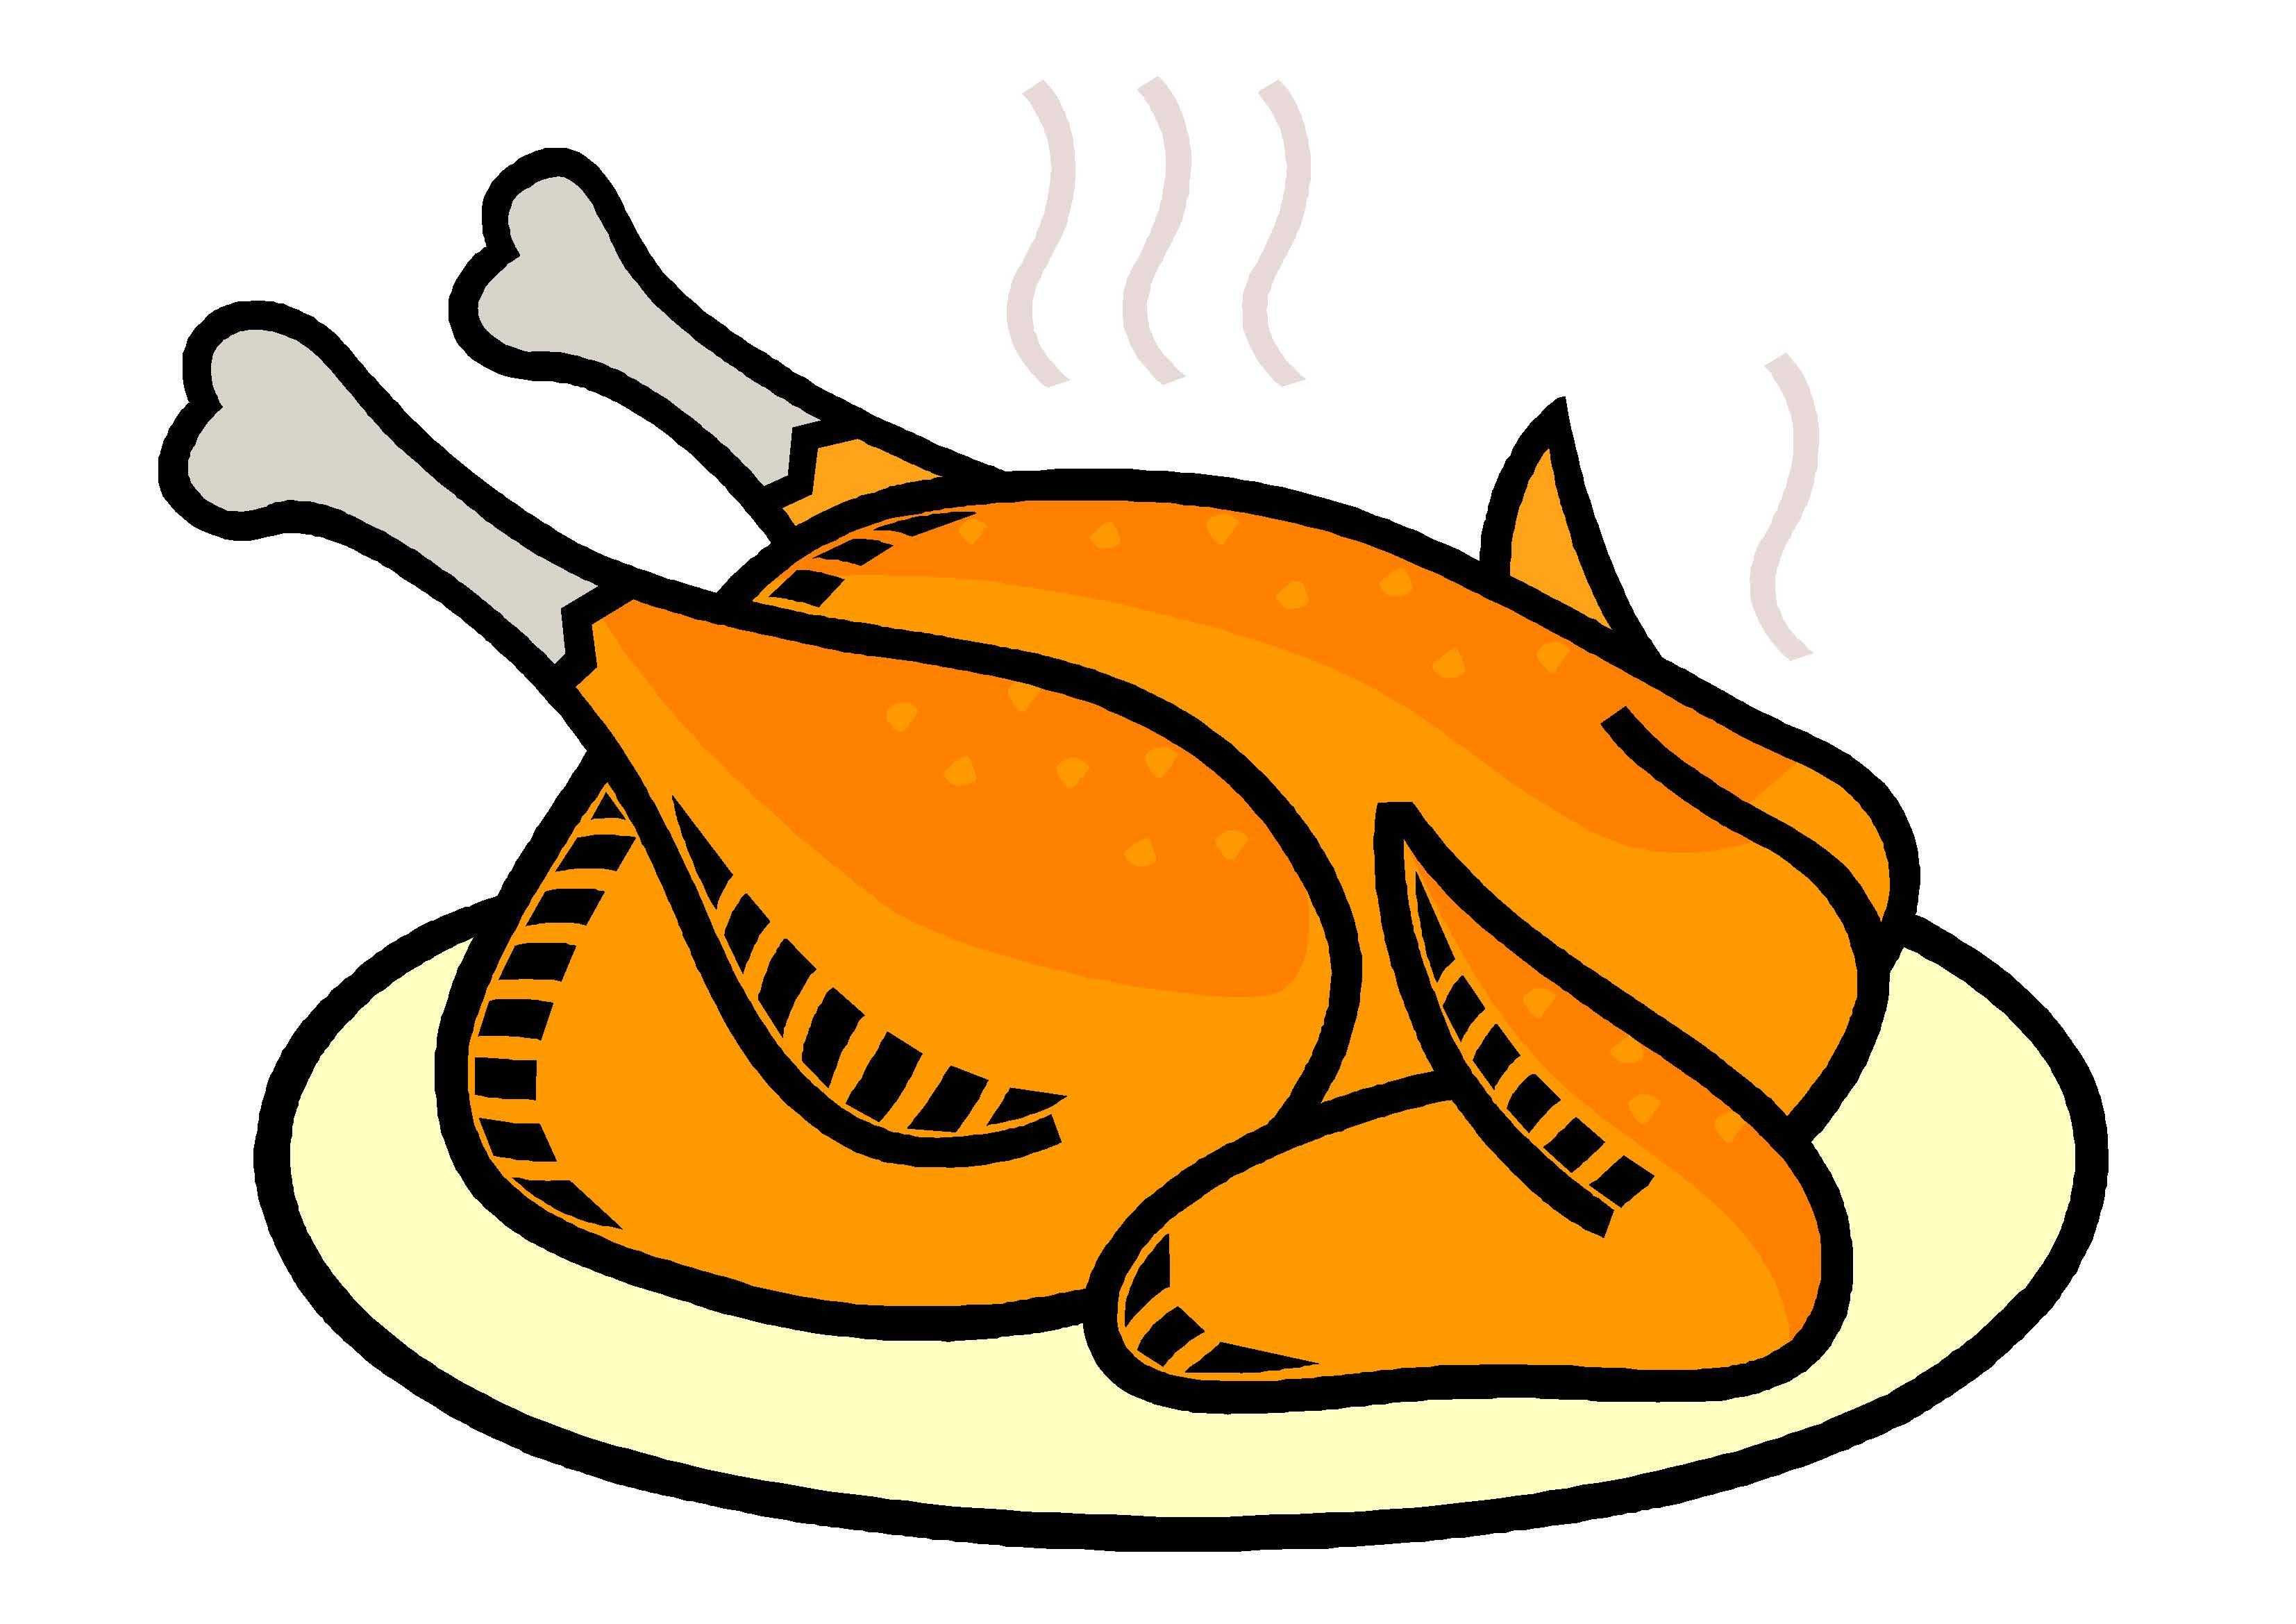 Turkey food drive clipart.